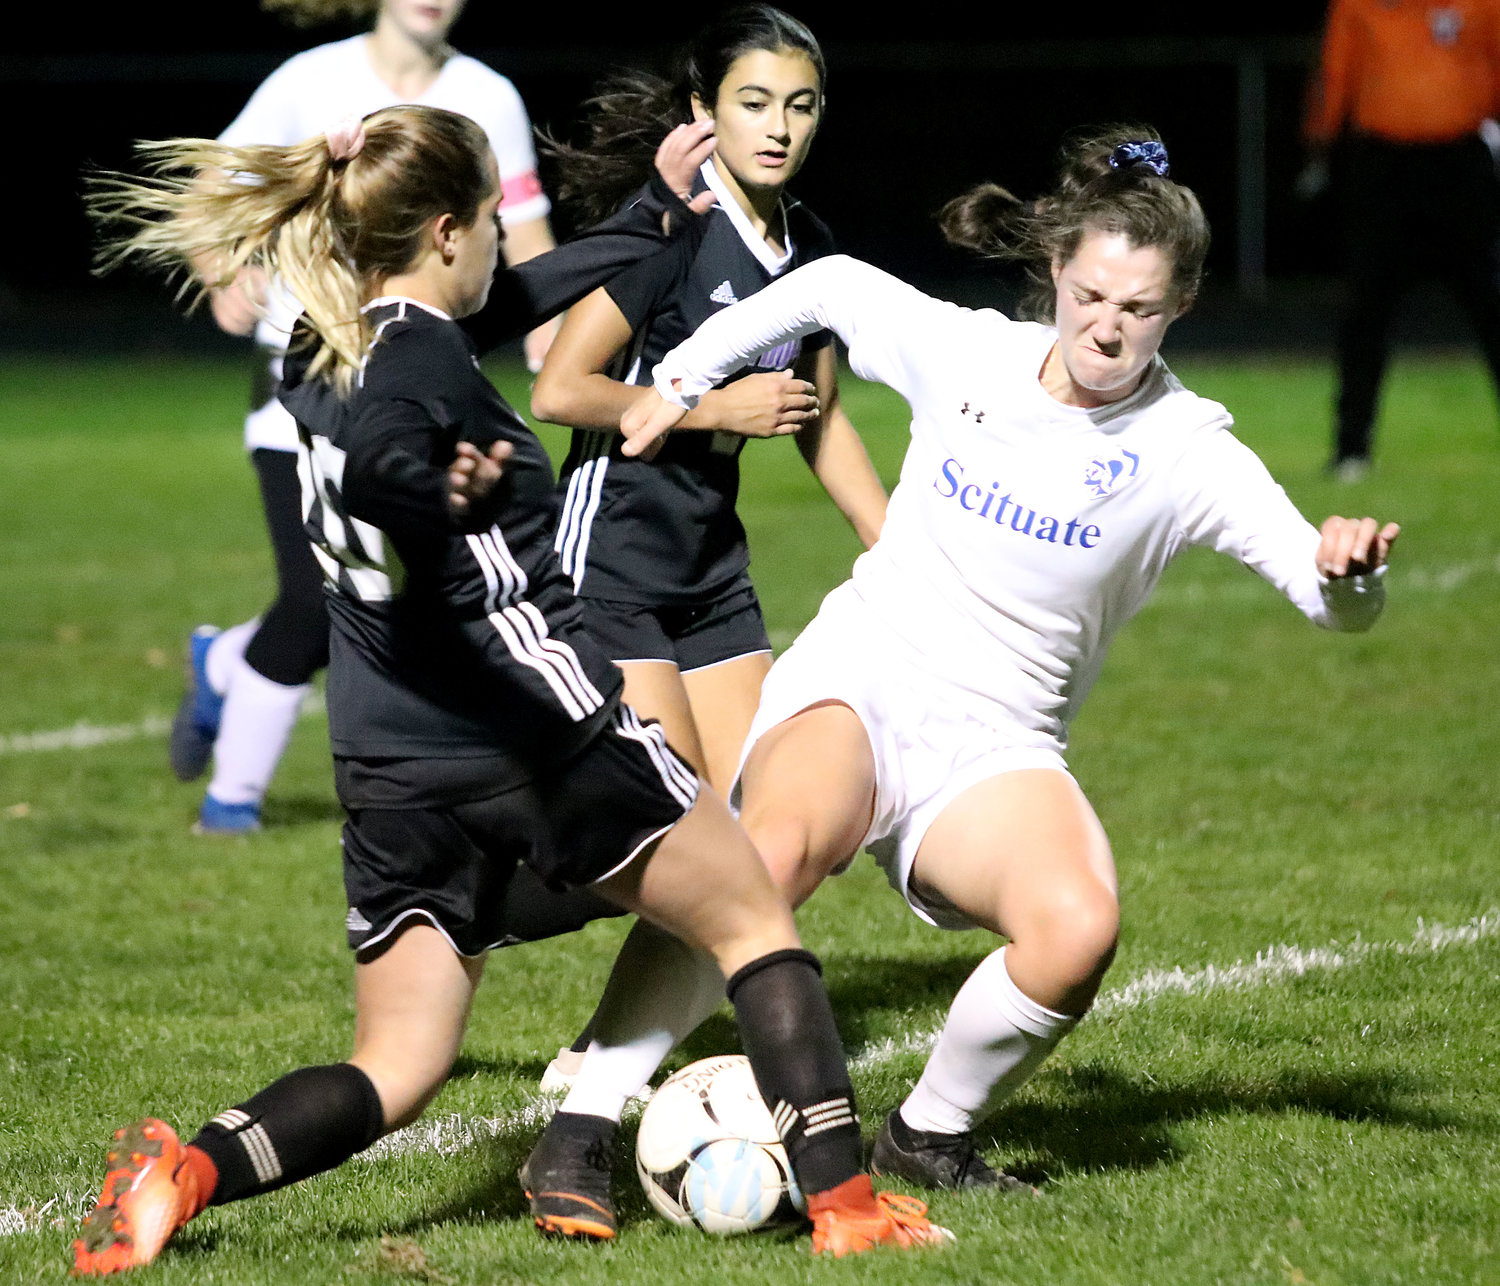 Leah Oliver (left) and Jovi Goldstein fight for the ball.